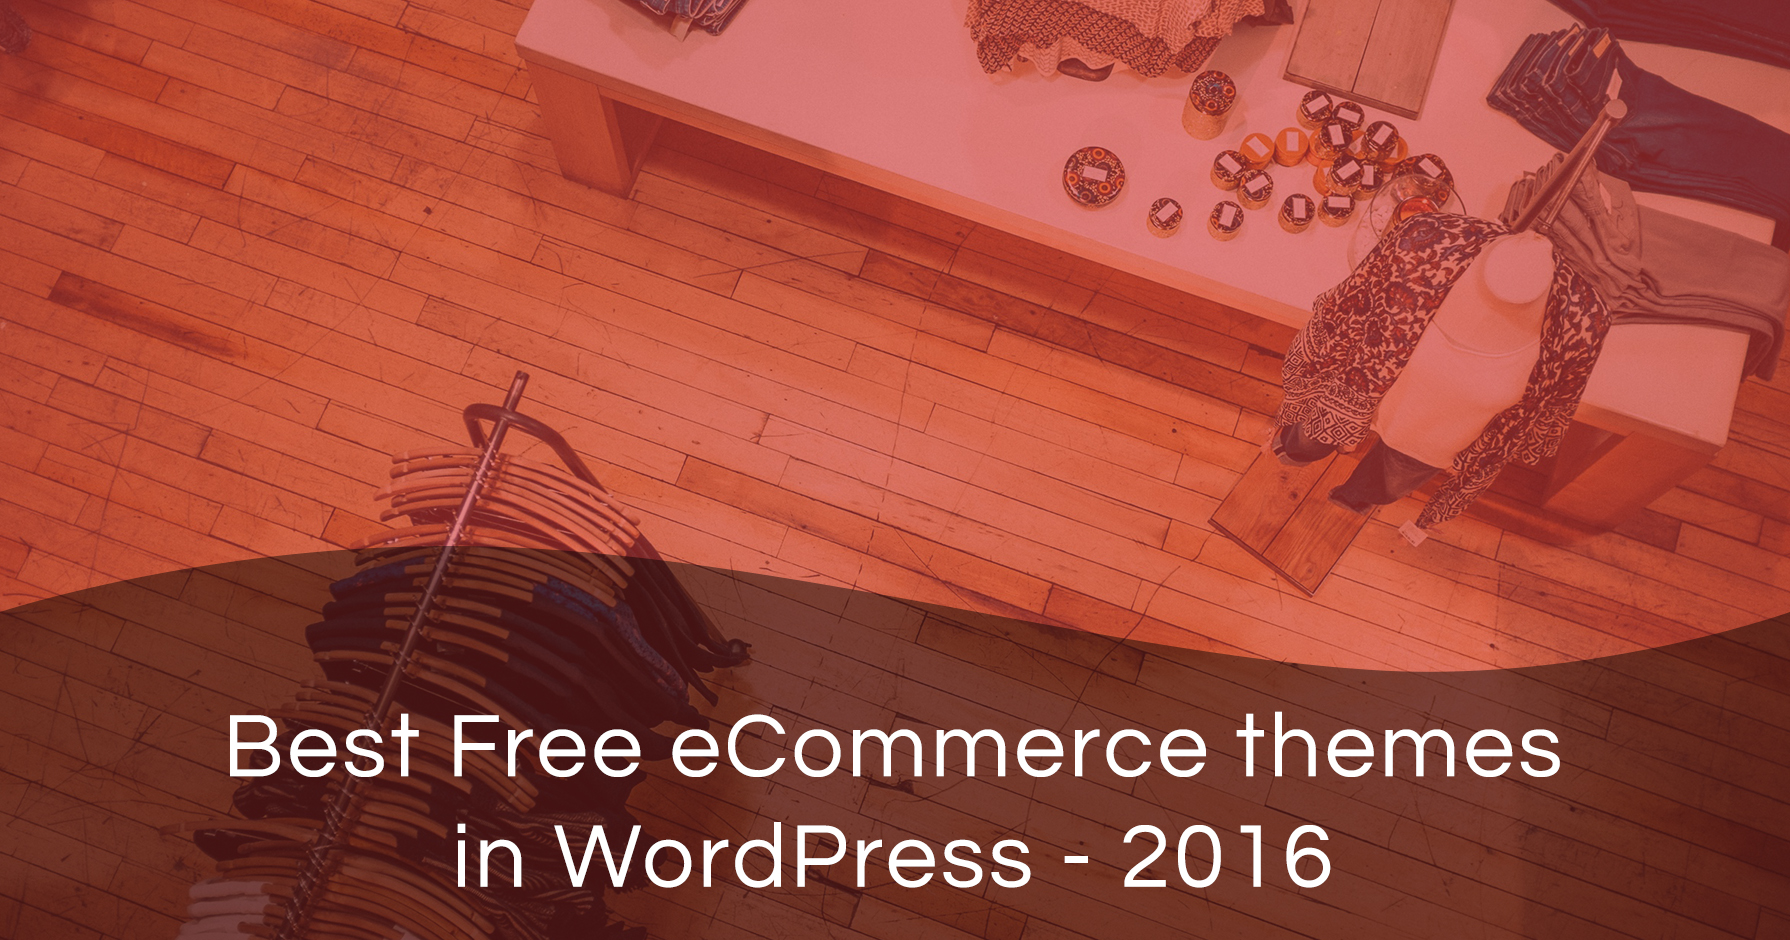 Best Free eCommerce Themes in WordPress released in 2016